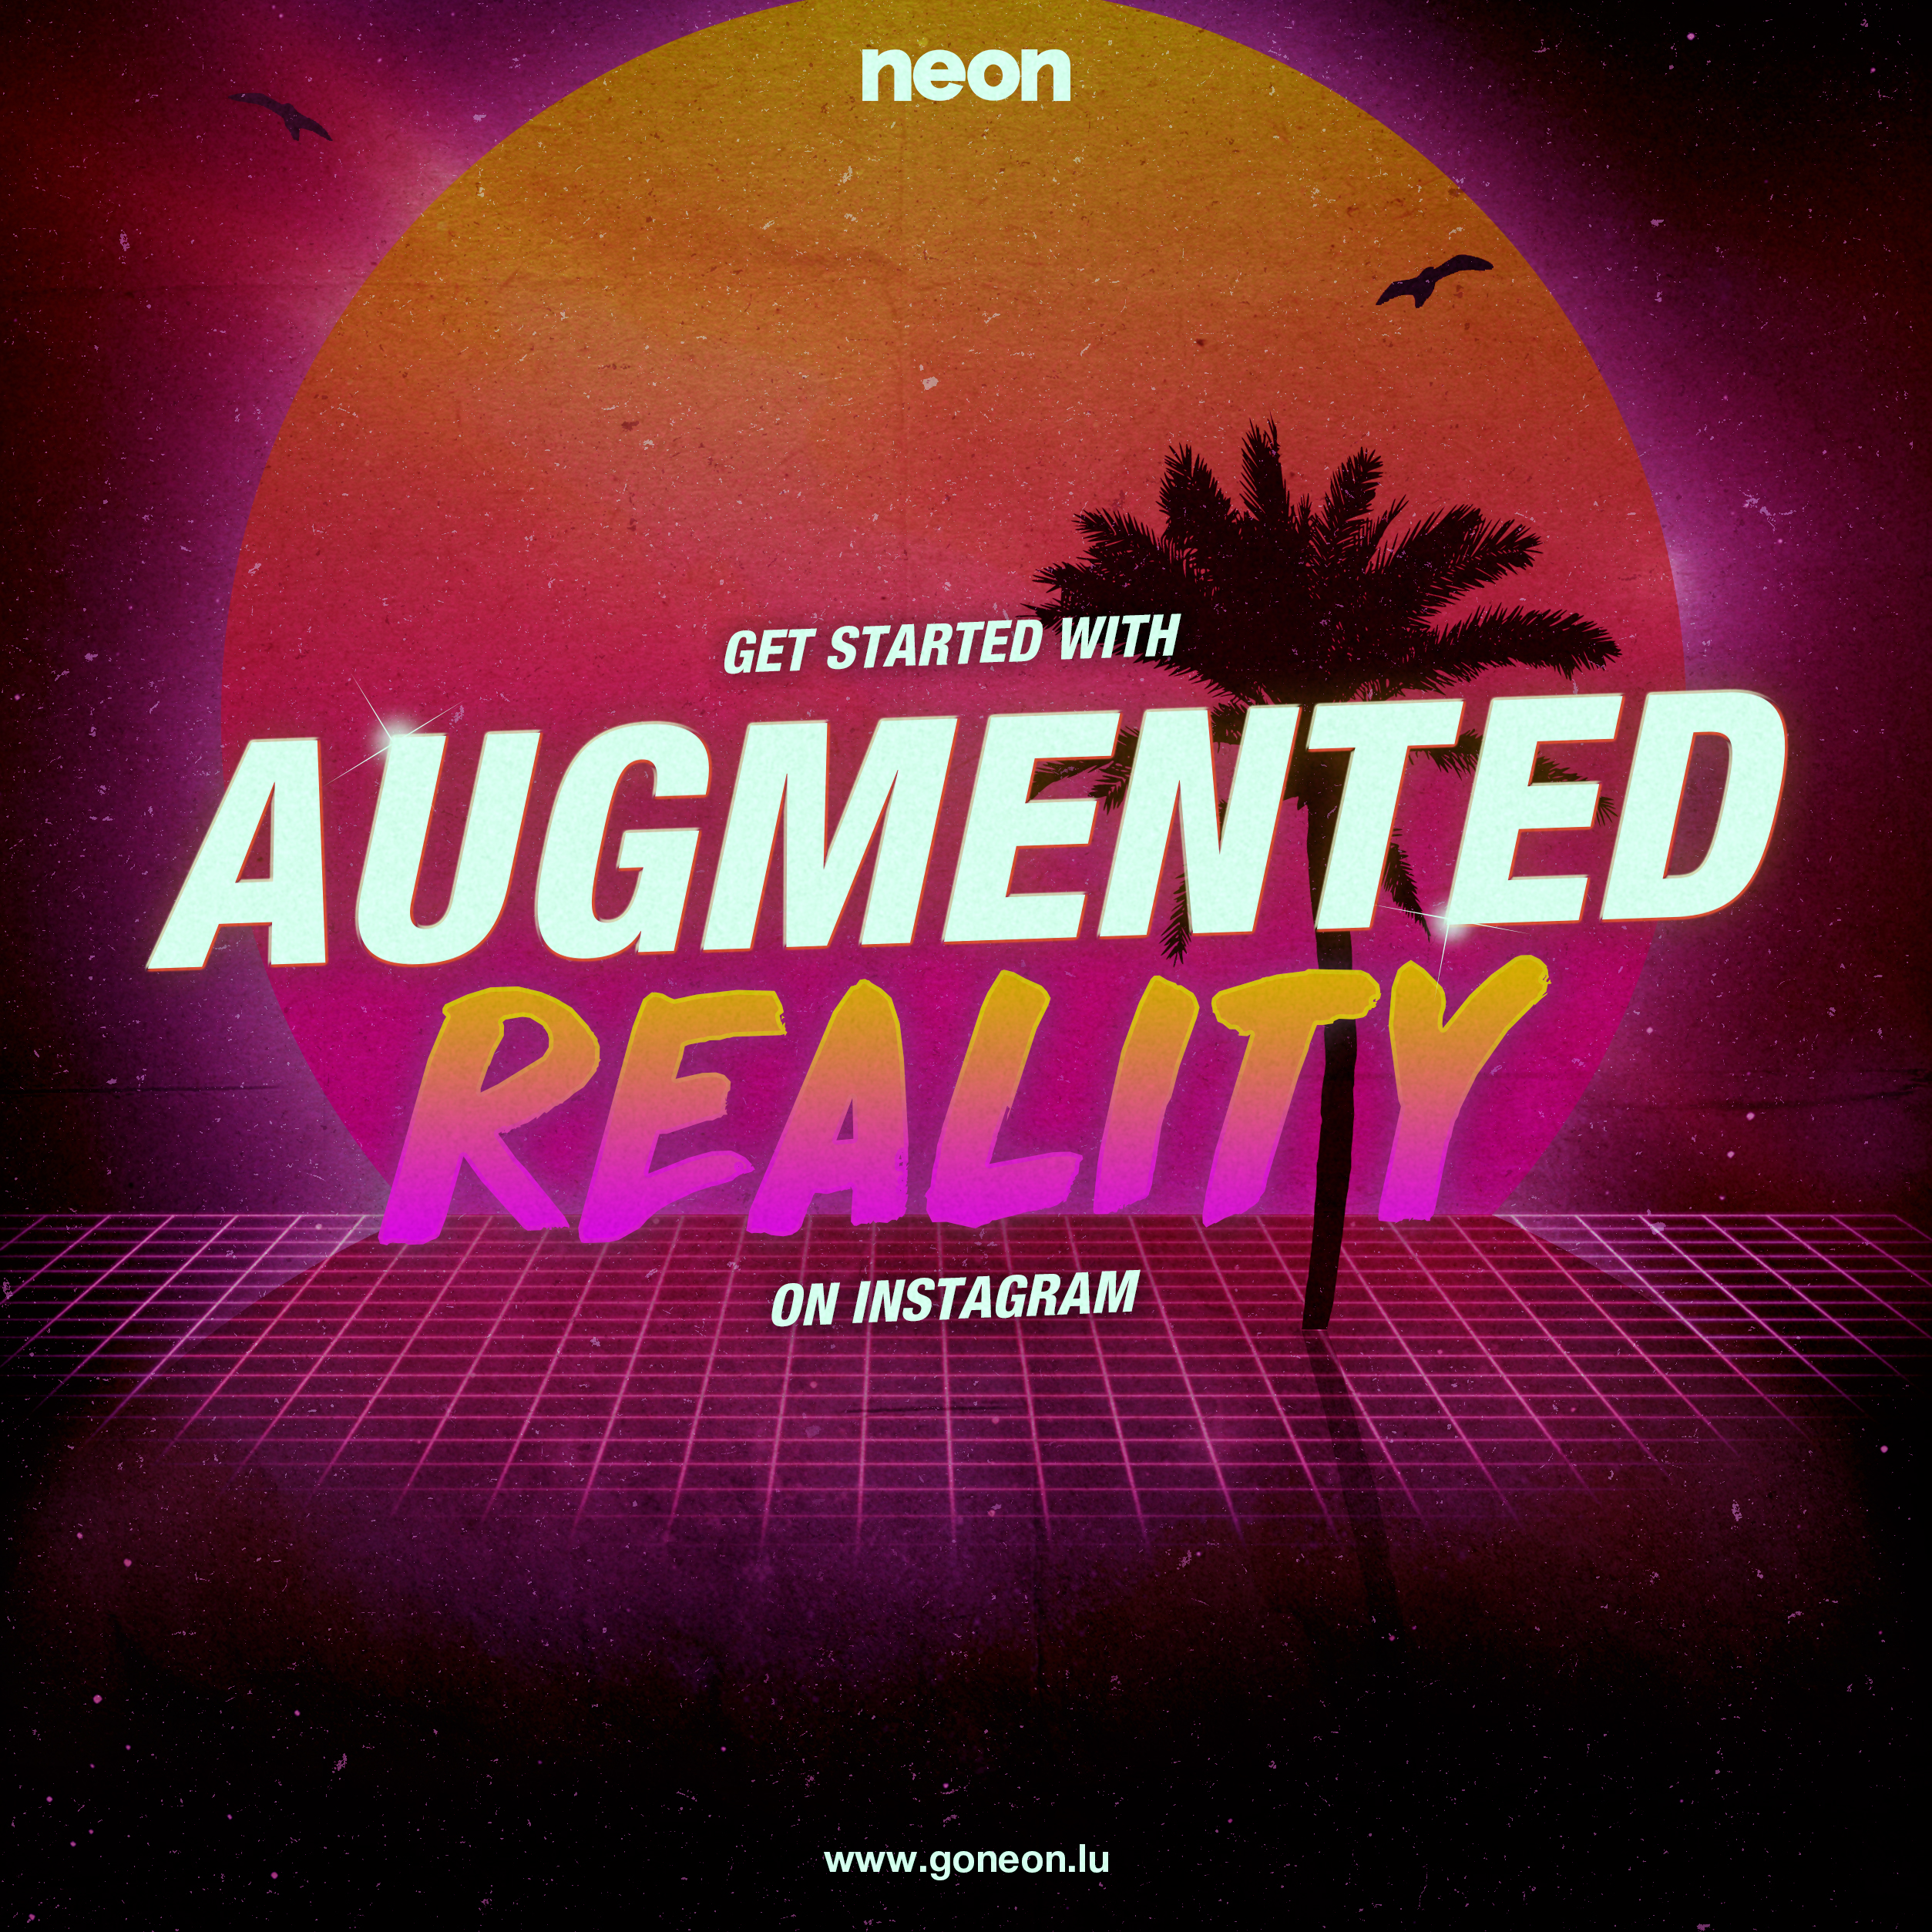 How to get started with Augmented Reality